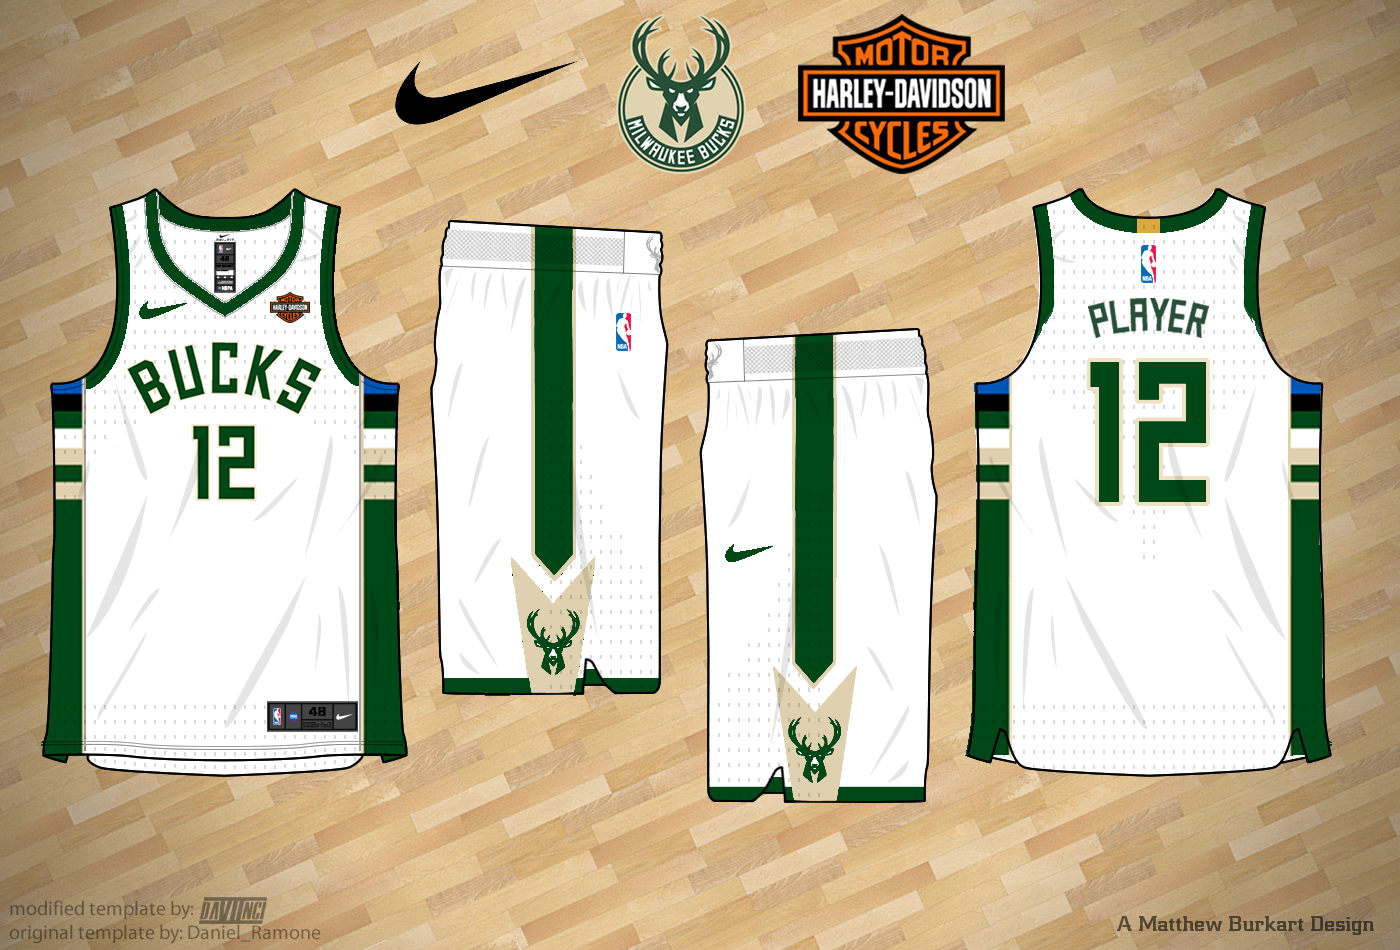 Nike Nba Concepts 2017 18 New Bucks Full Concept Page